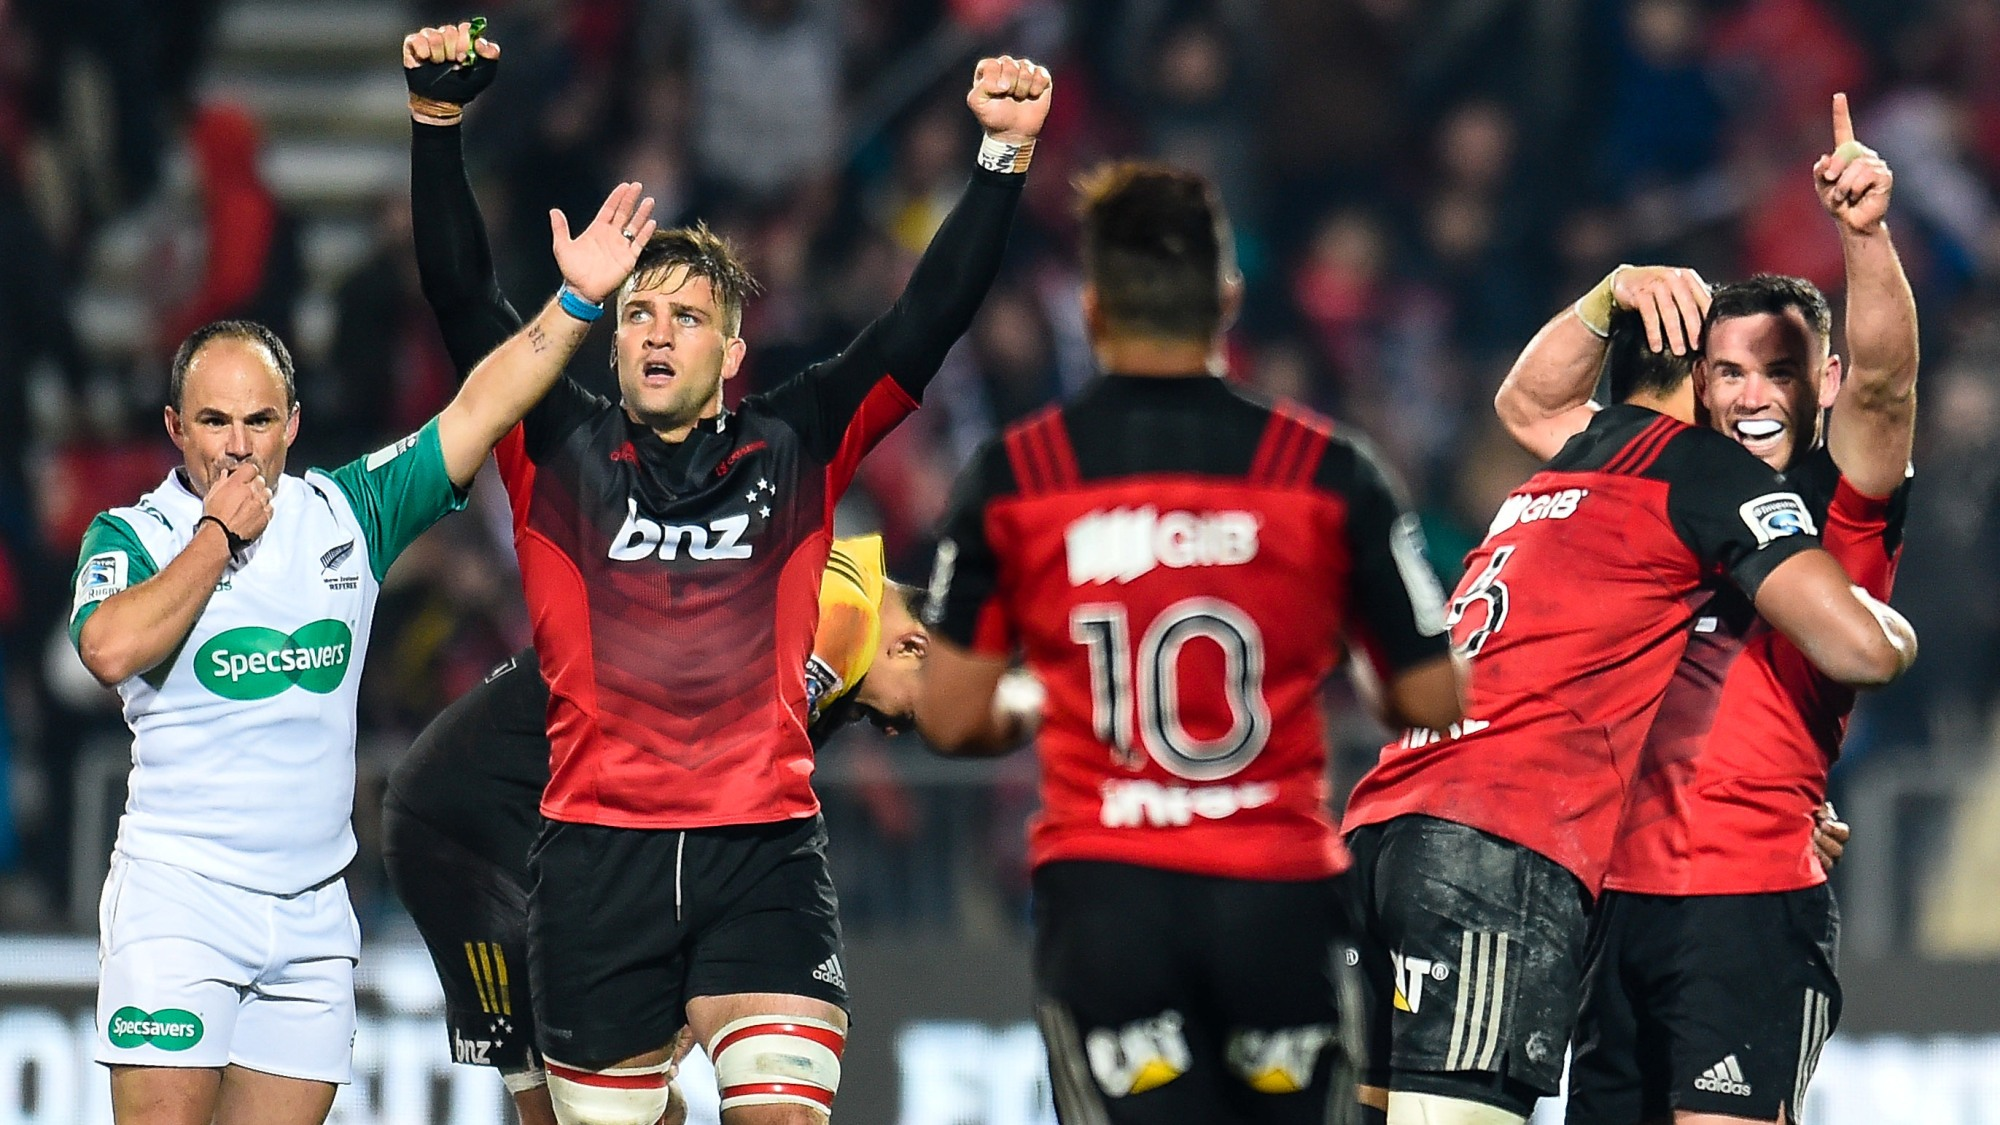 Lions scout: Crusaders ease to Rebels win to remain unbeaten